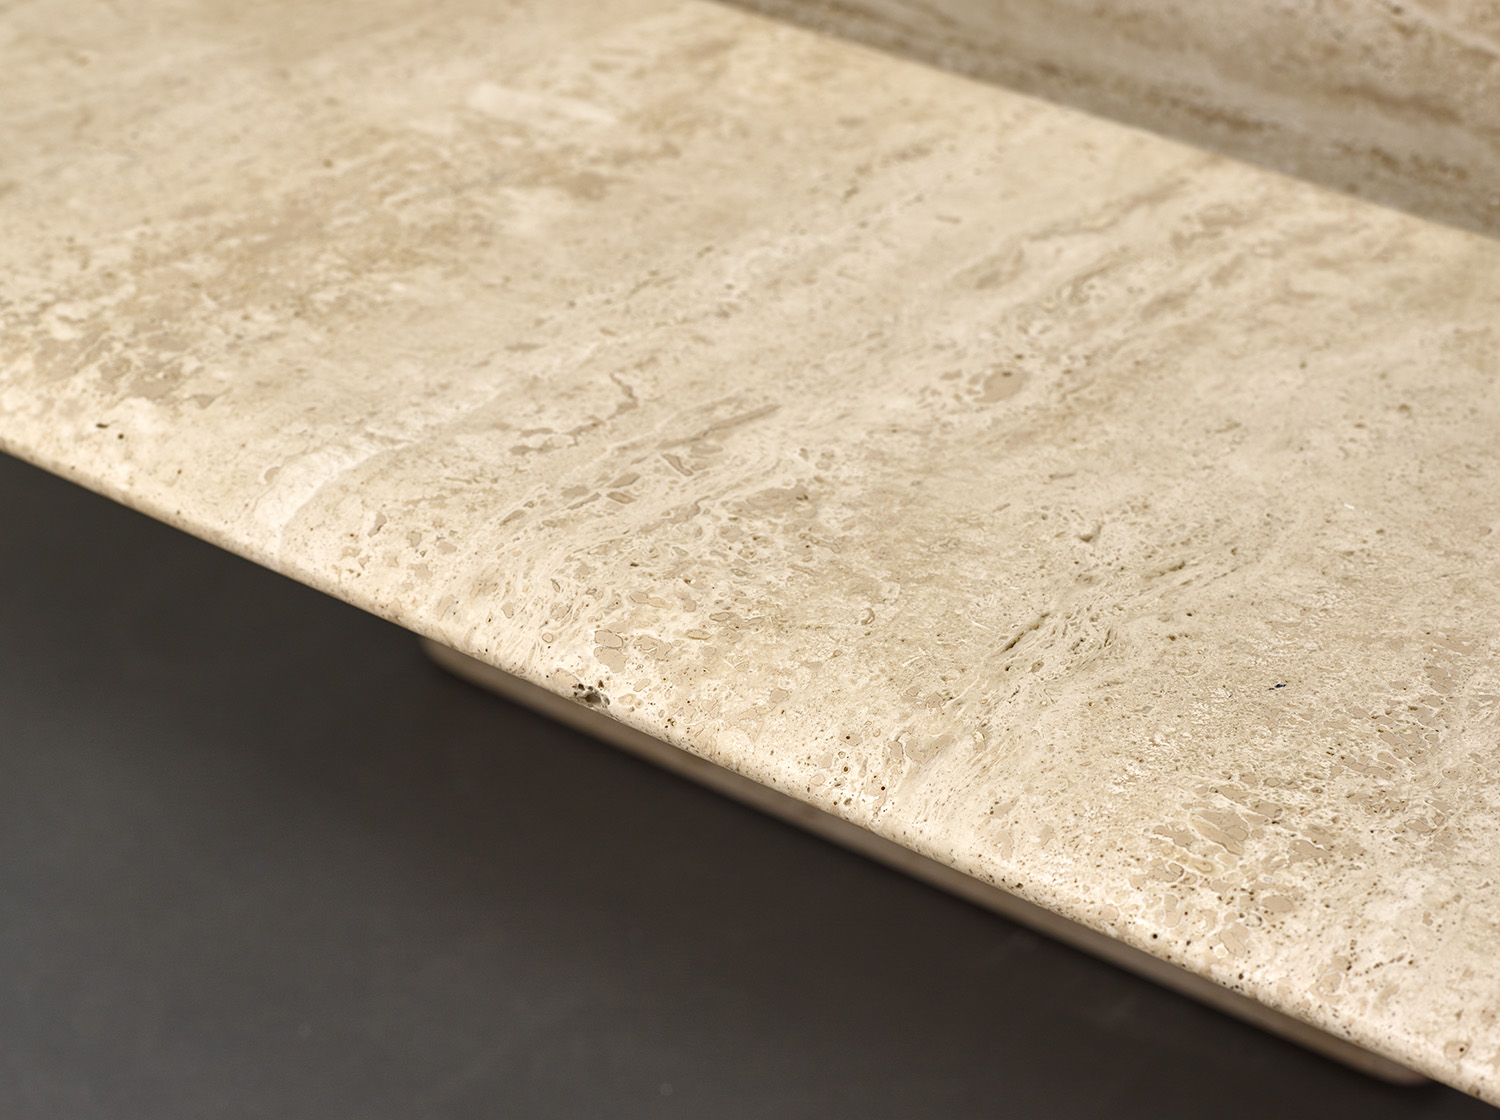 italian-travertine-coffee-table-with-floating-top-1970-1980-image-10